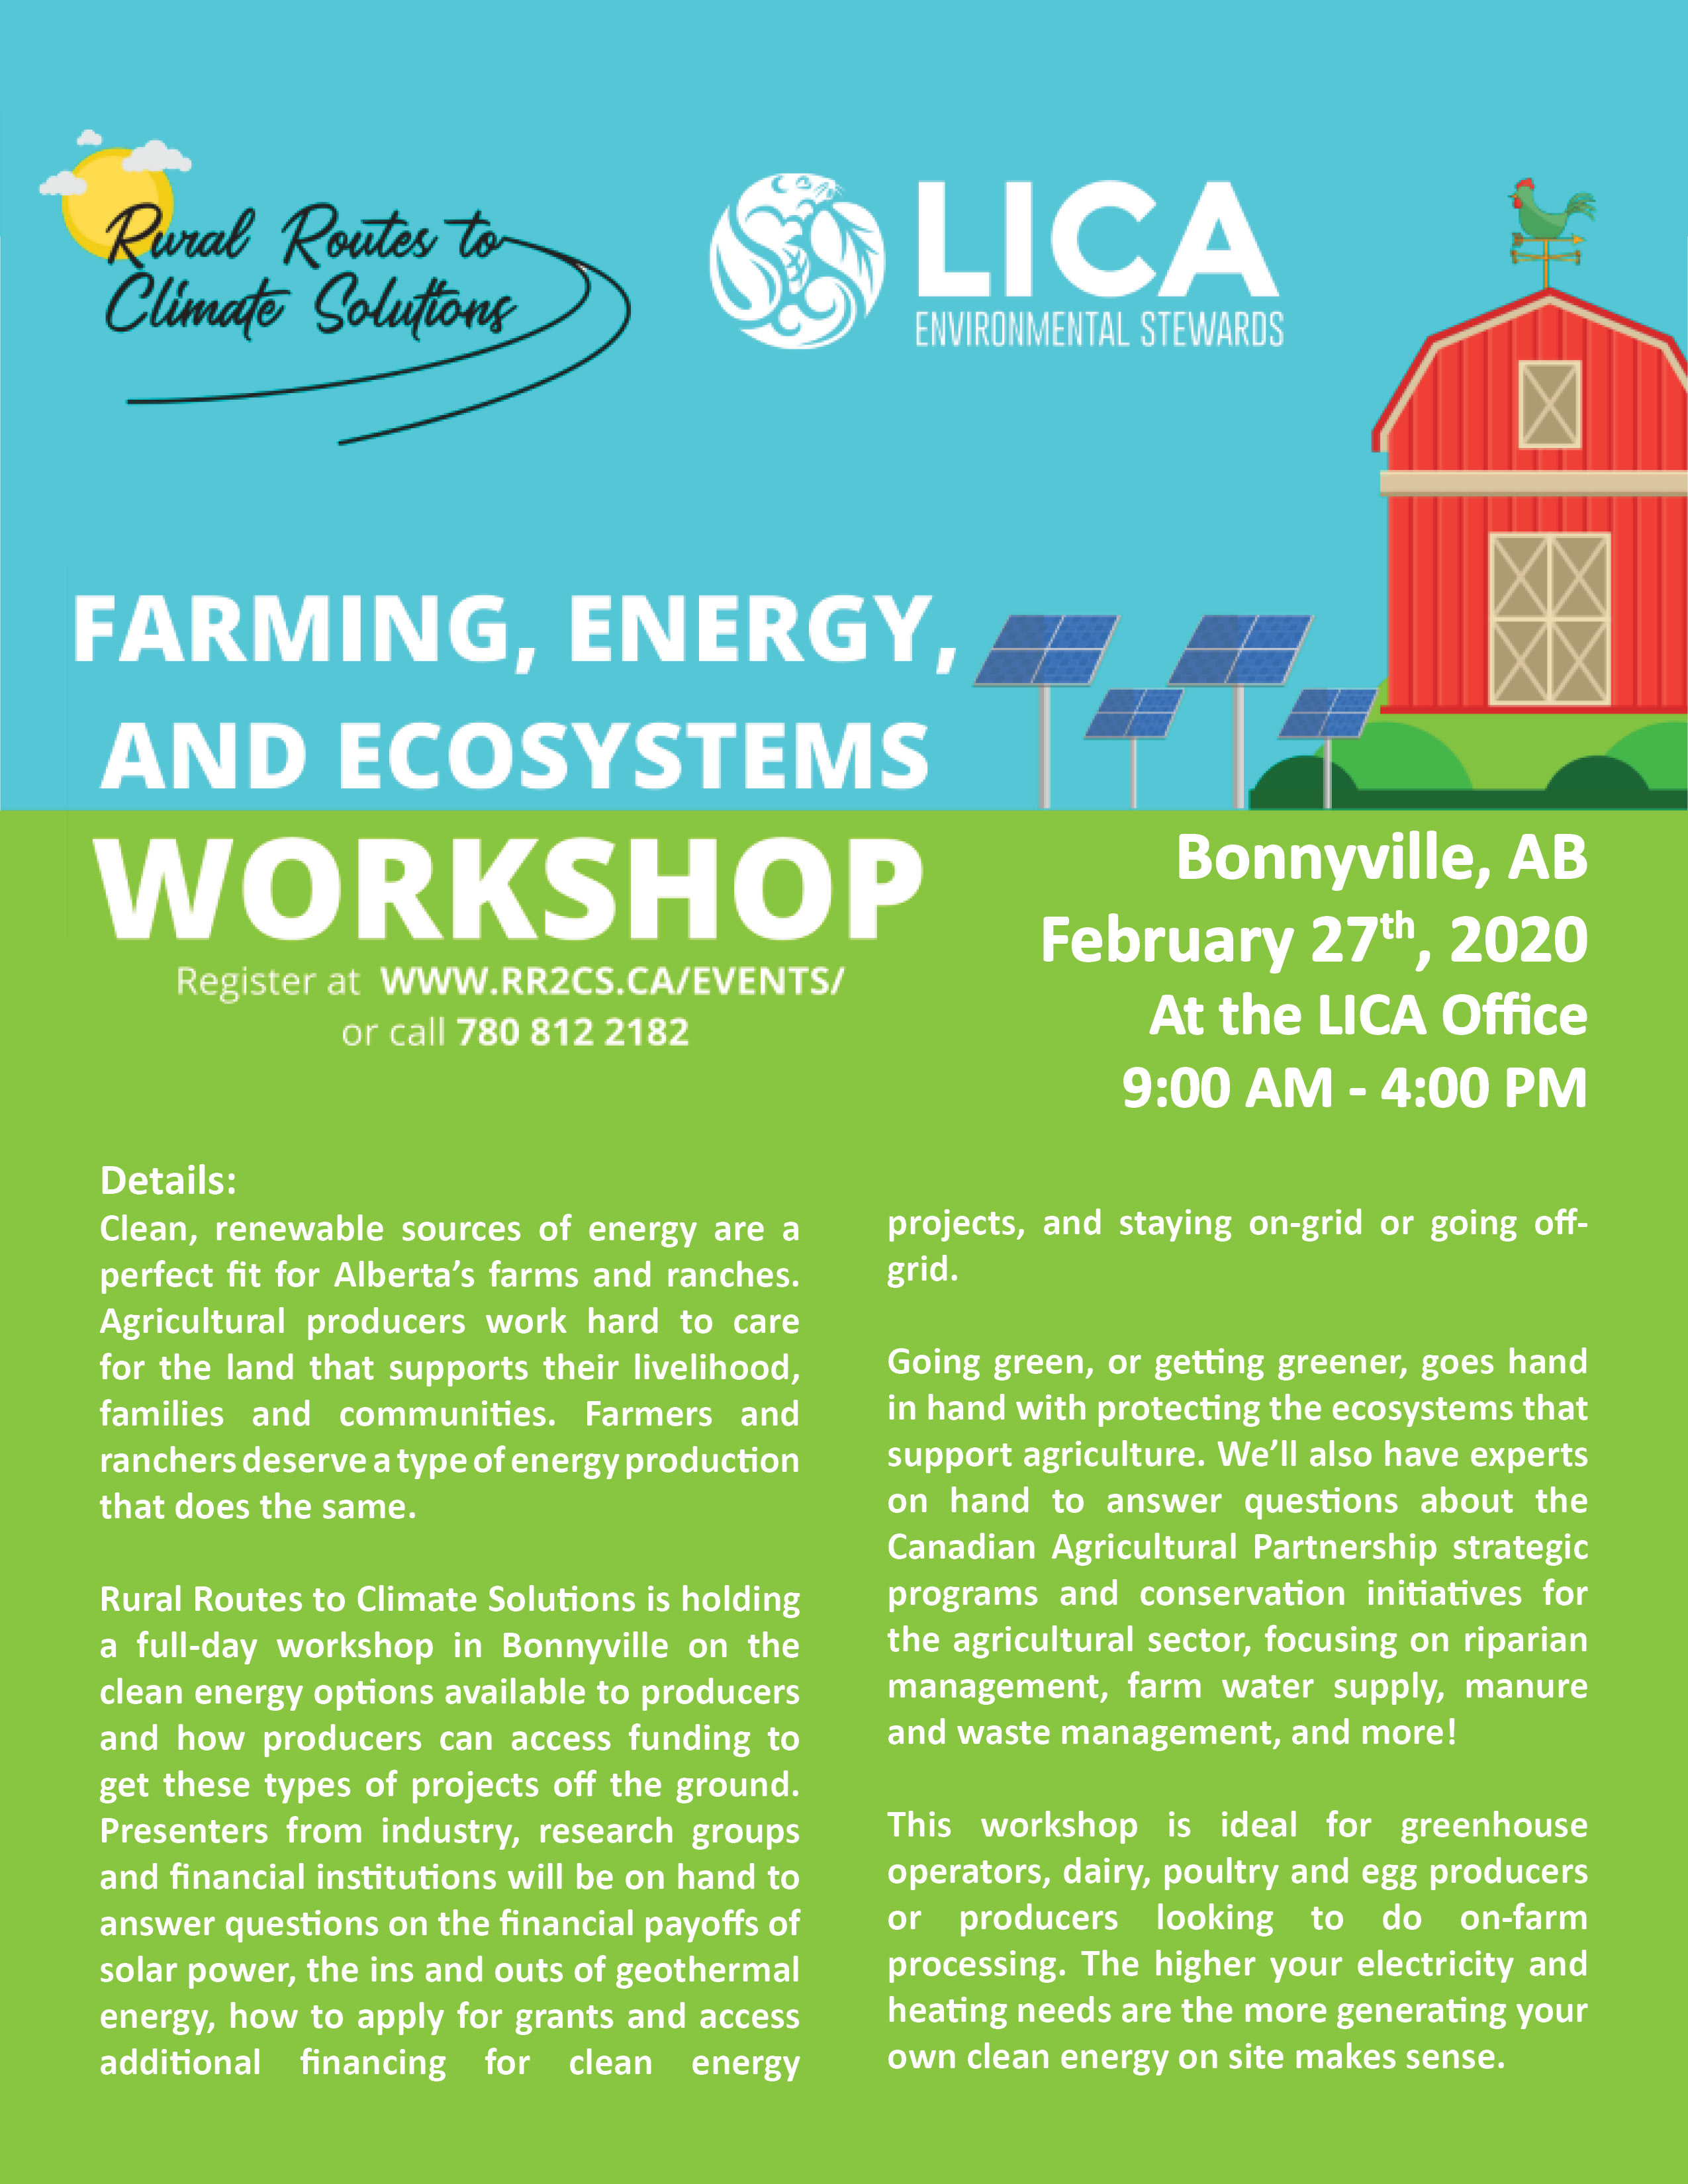 Farming, Energy, and Ecosystems Event